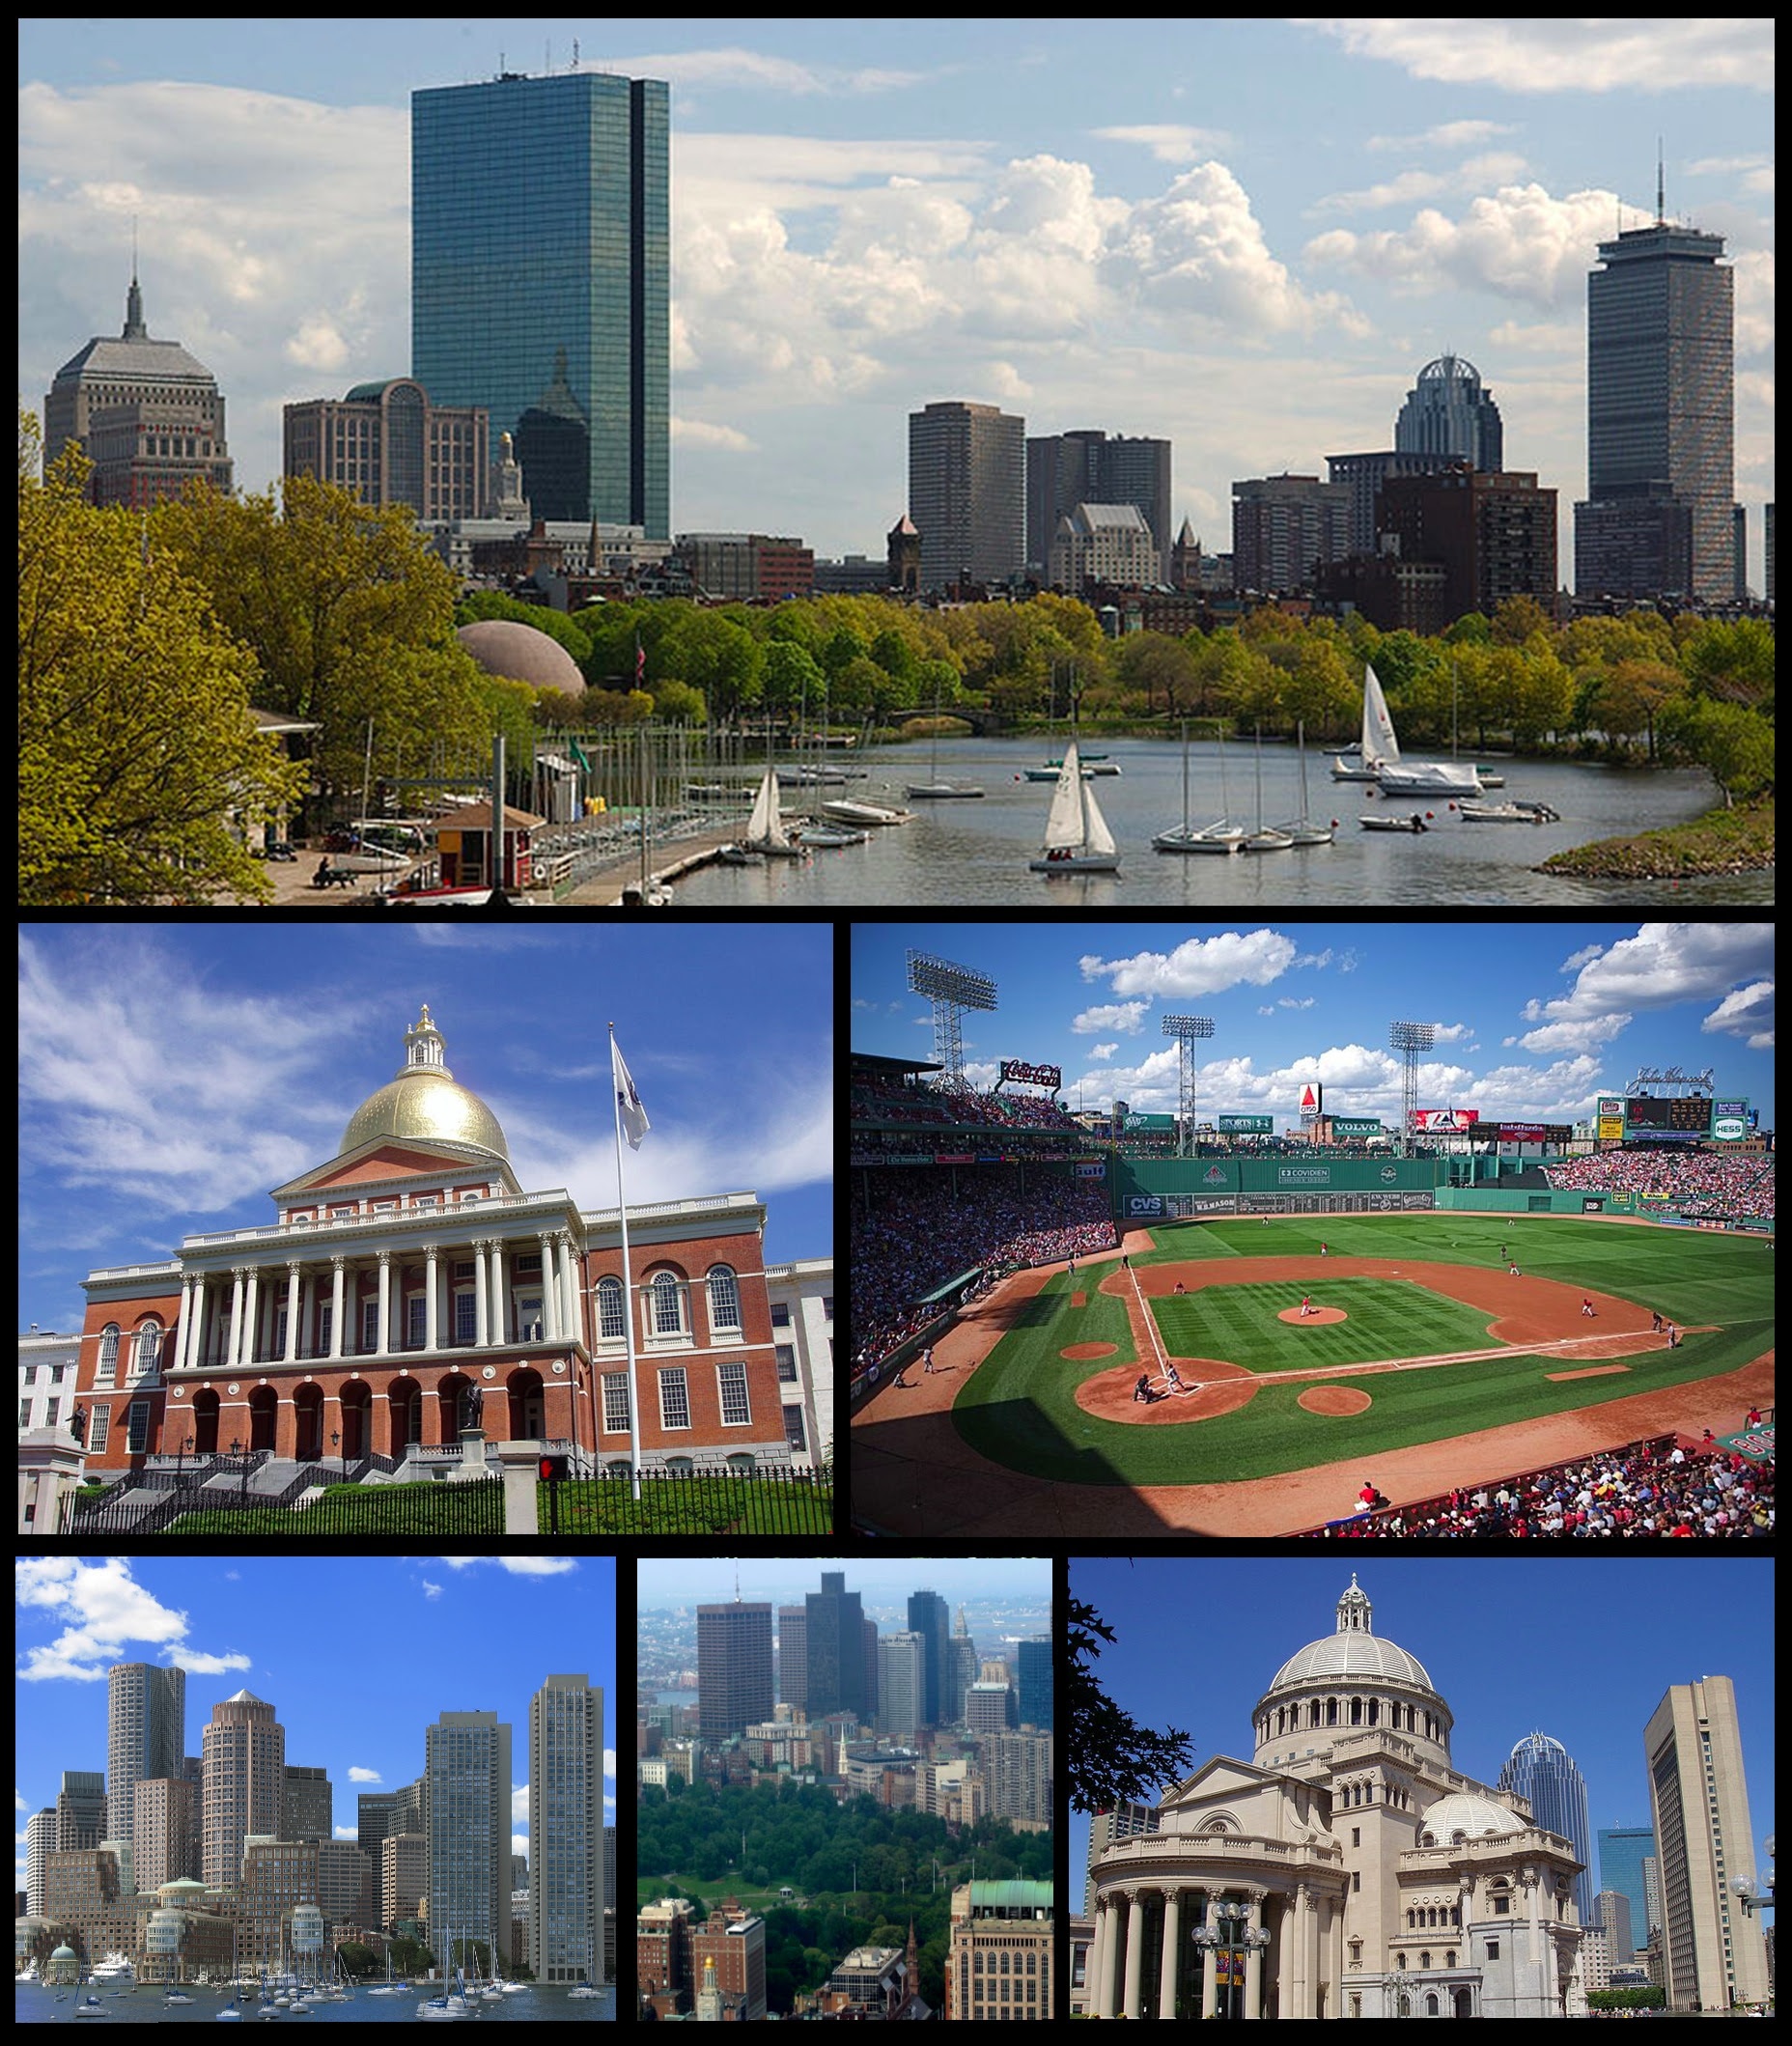 Clockwise: Skyline of Back Bay seen from the Charles River, Fenway Park, Christian Science Church, Boston Common and the Downtown Crossing skyline, skyline of the Financial District seen from the Boston Harbor, and Massachusetts State House